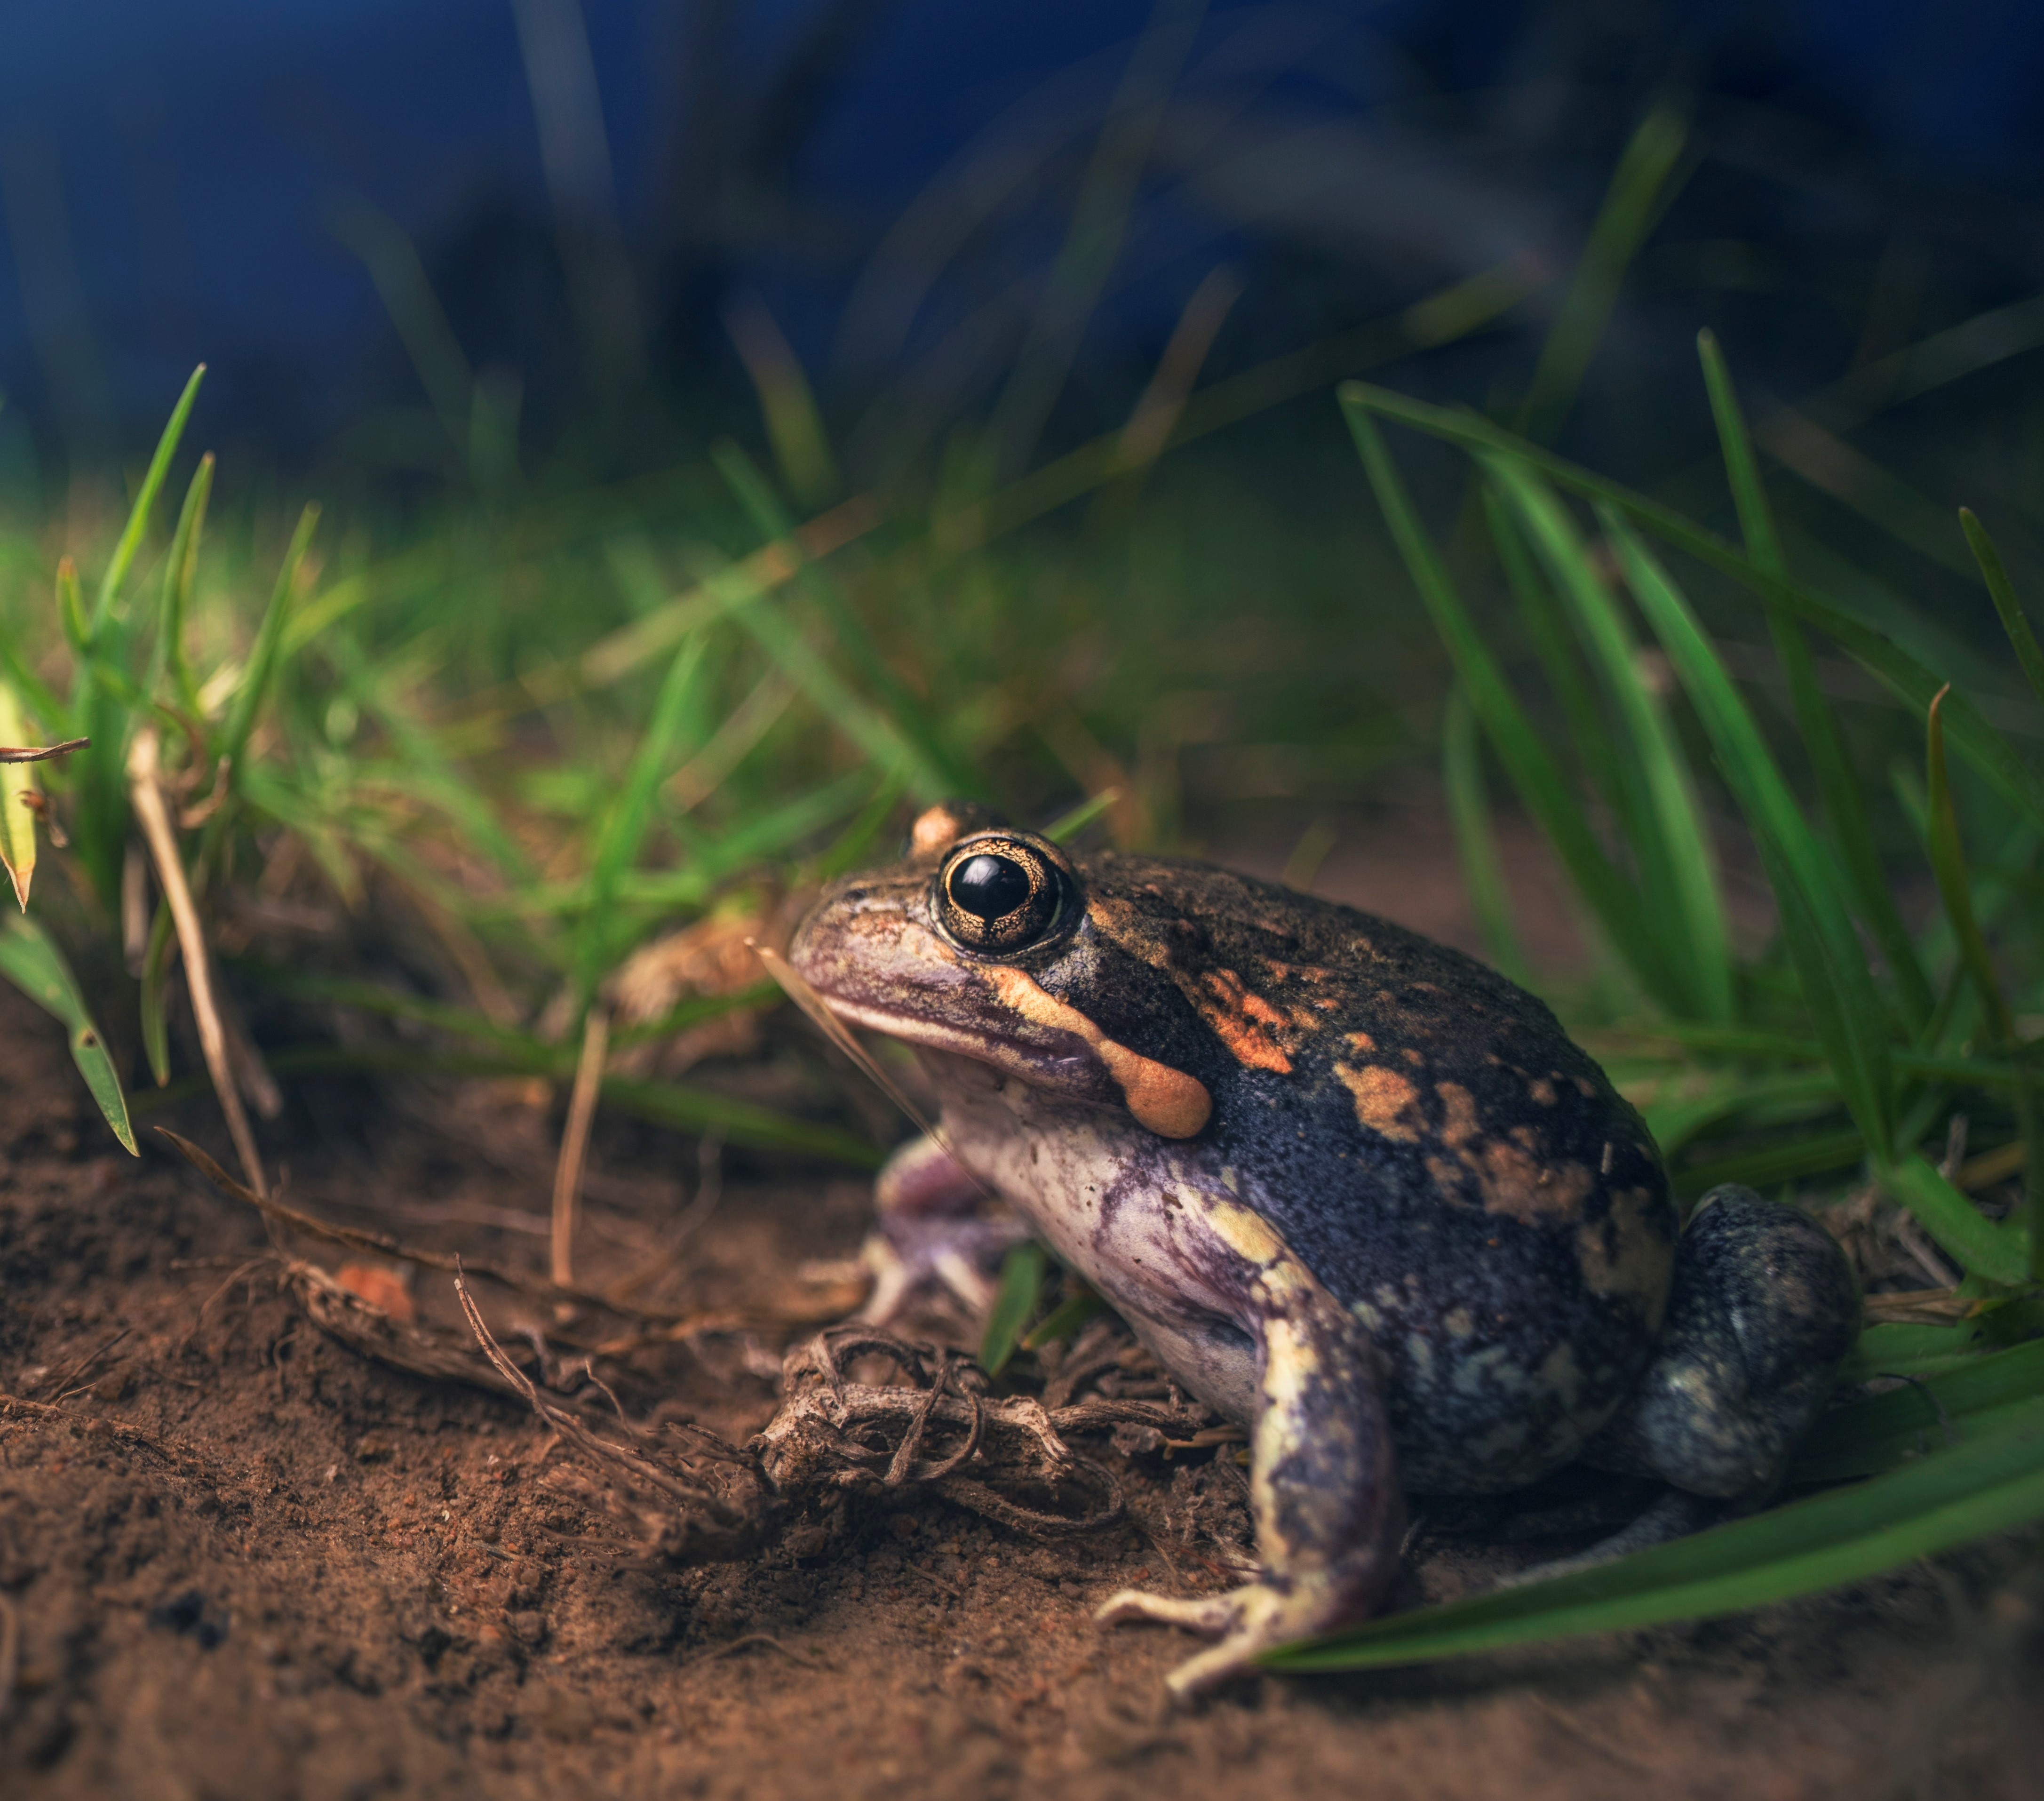 The Pobblebonk or Banjo frog is one of seven amphibian species found in Yarra.  It has a very distinctive call consisting of a short explosive musical note producing a melodic 'bonk' sound.  This frog species is considered a good bio-indicator of habitat quality because they have complex life cycles dependent on both aquatic and terrestrial habitats.